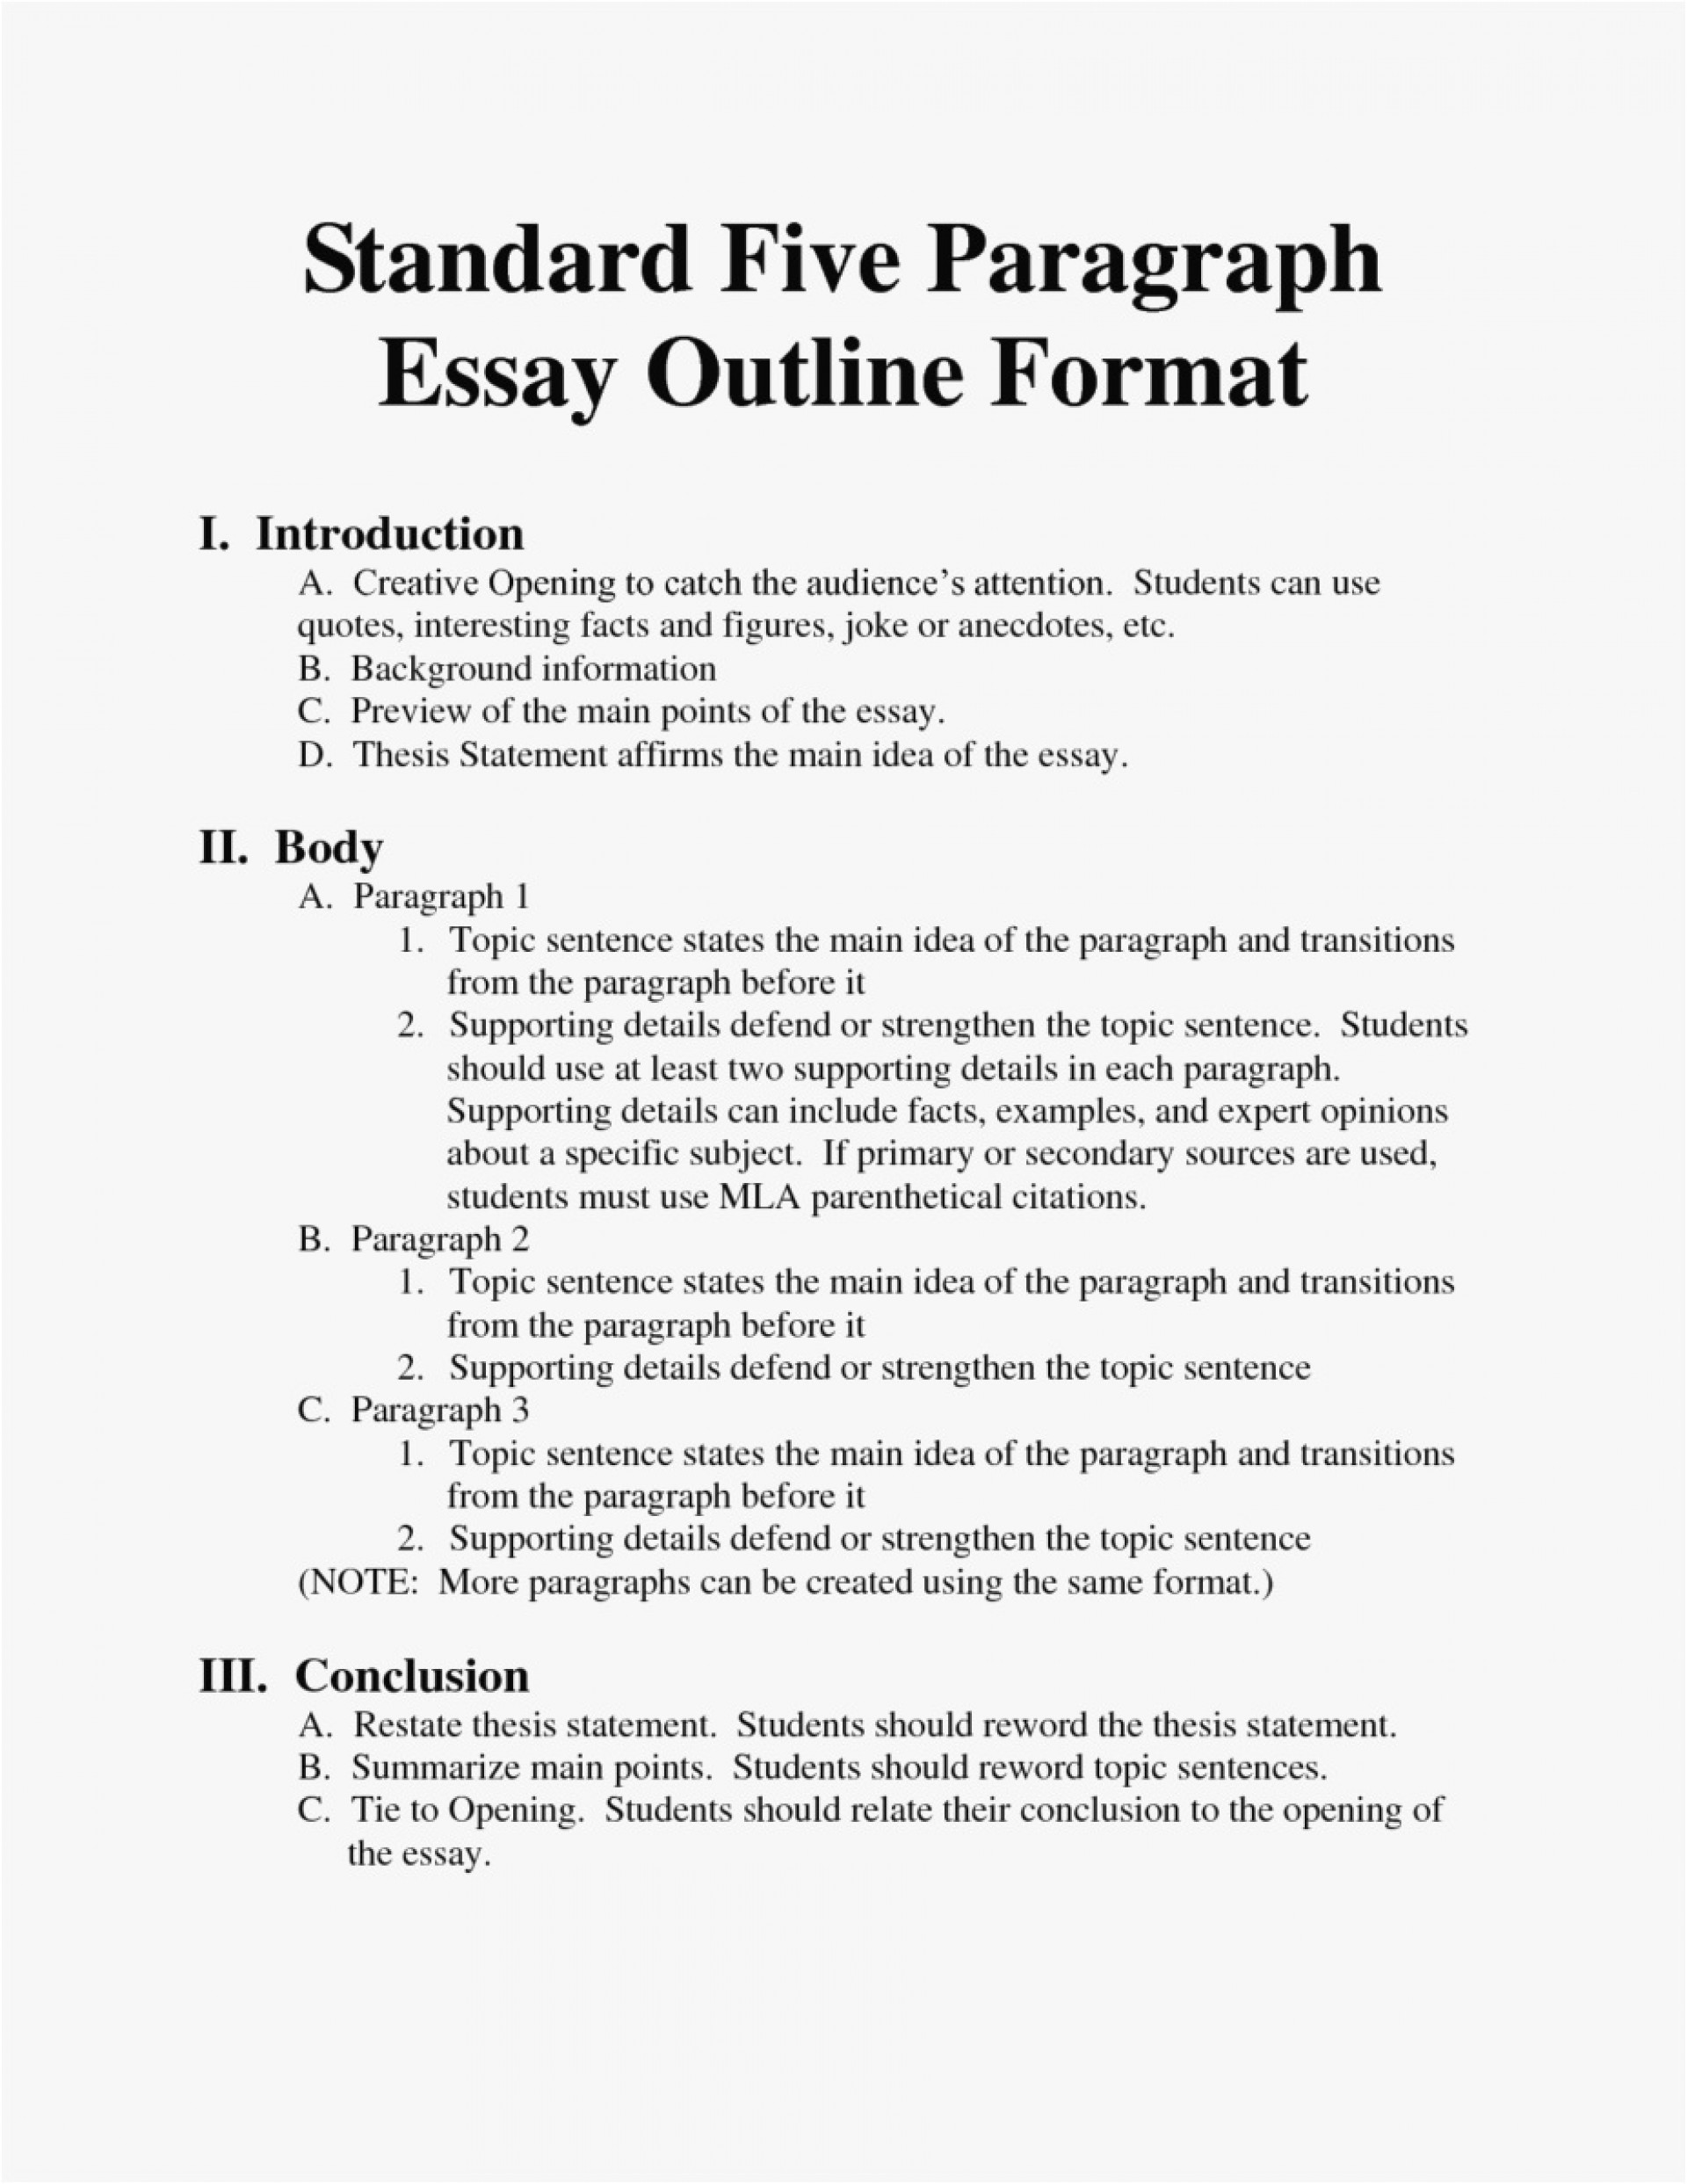 010 Best Essays Essay Example College Outline Template Picture What Is For Topics Ideas About Ever Identity Ivy League Reddit New York Times Harvard Common App Exceptional On Love Video 2017 American 1920